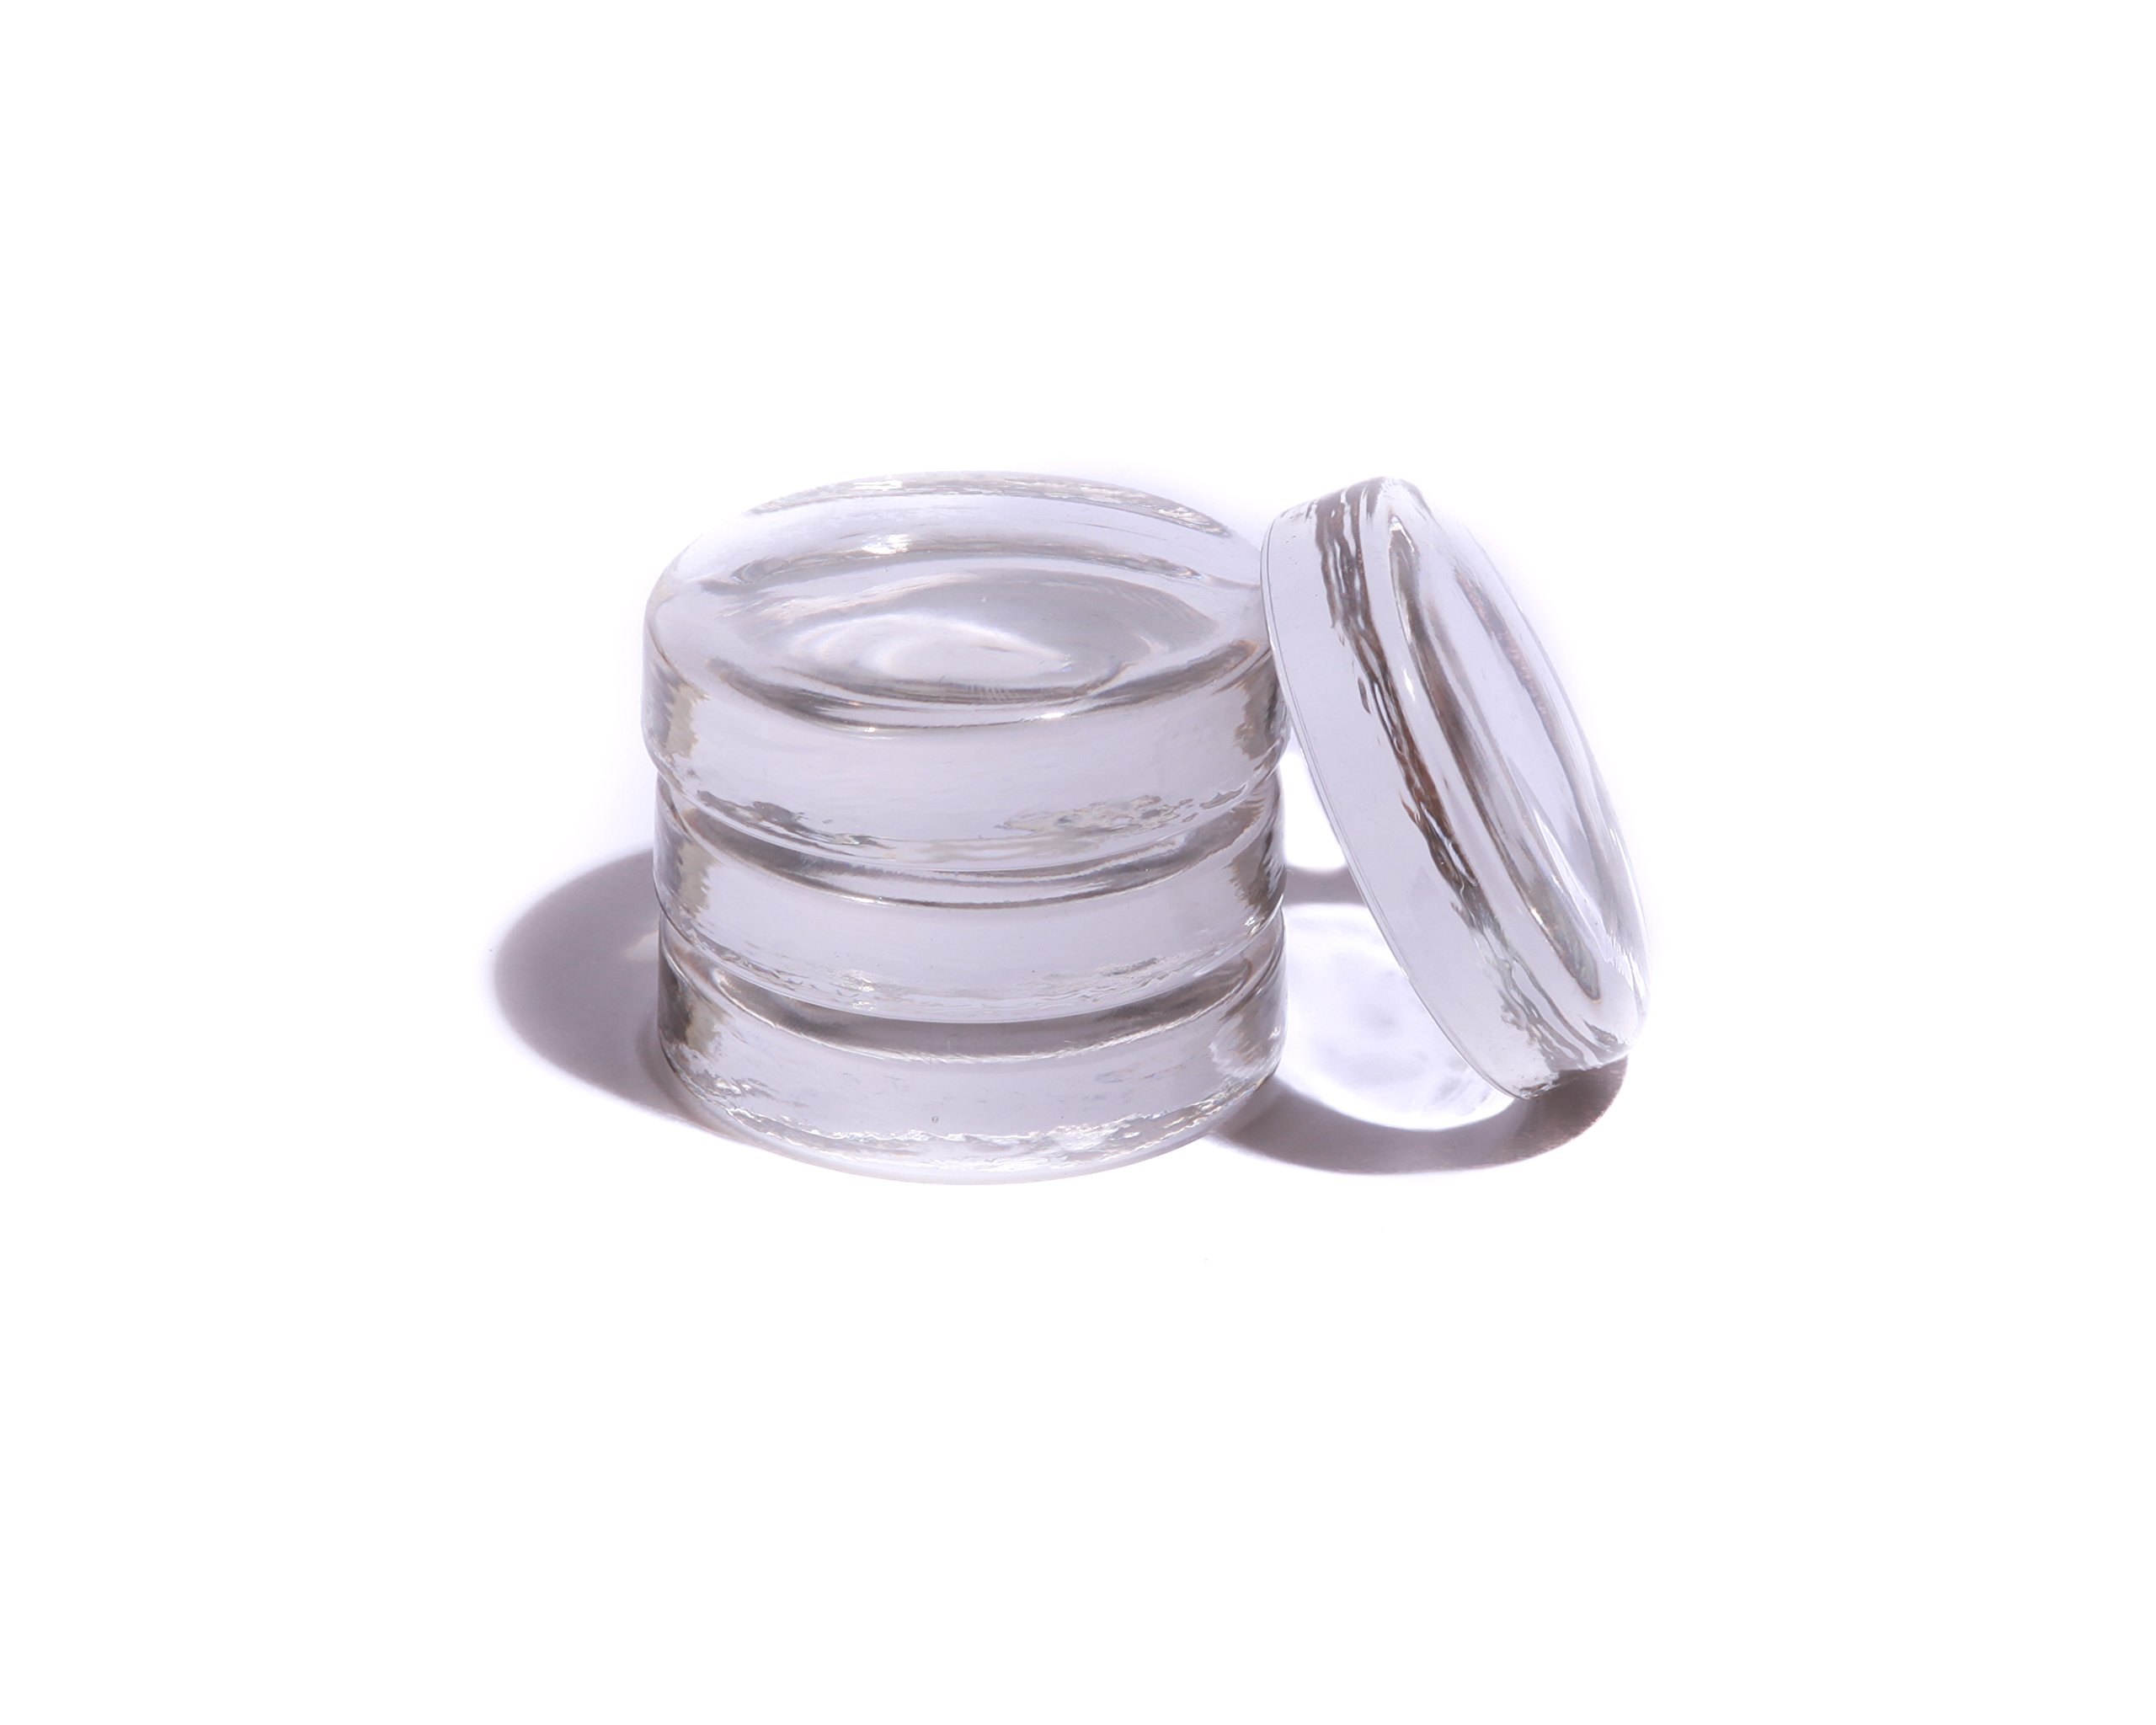 Go Ferment! Wide Mouth Mason Jar Glass Fermentation Weights & Recipe E-Book - Made in the USA (Pack of 4) by Go Ferment! (Image #4)